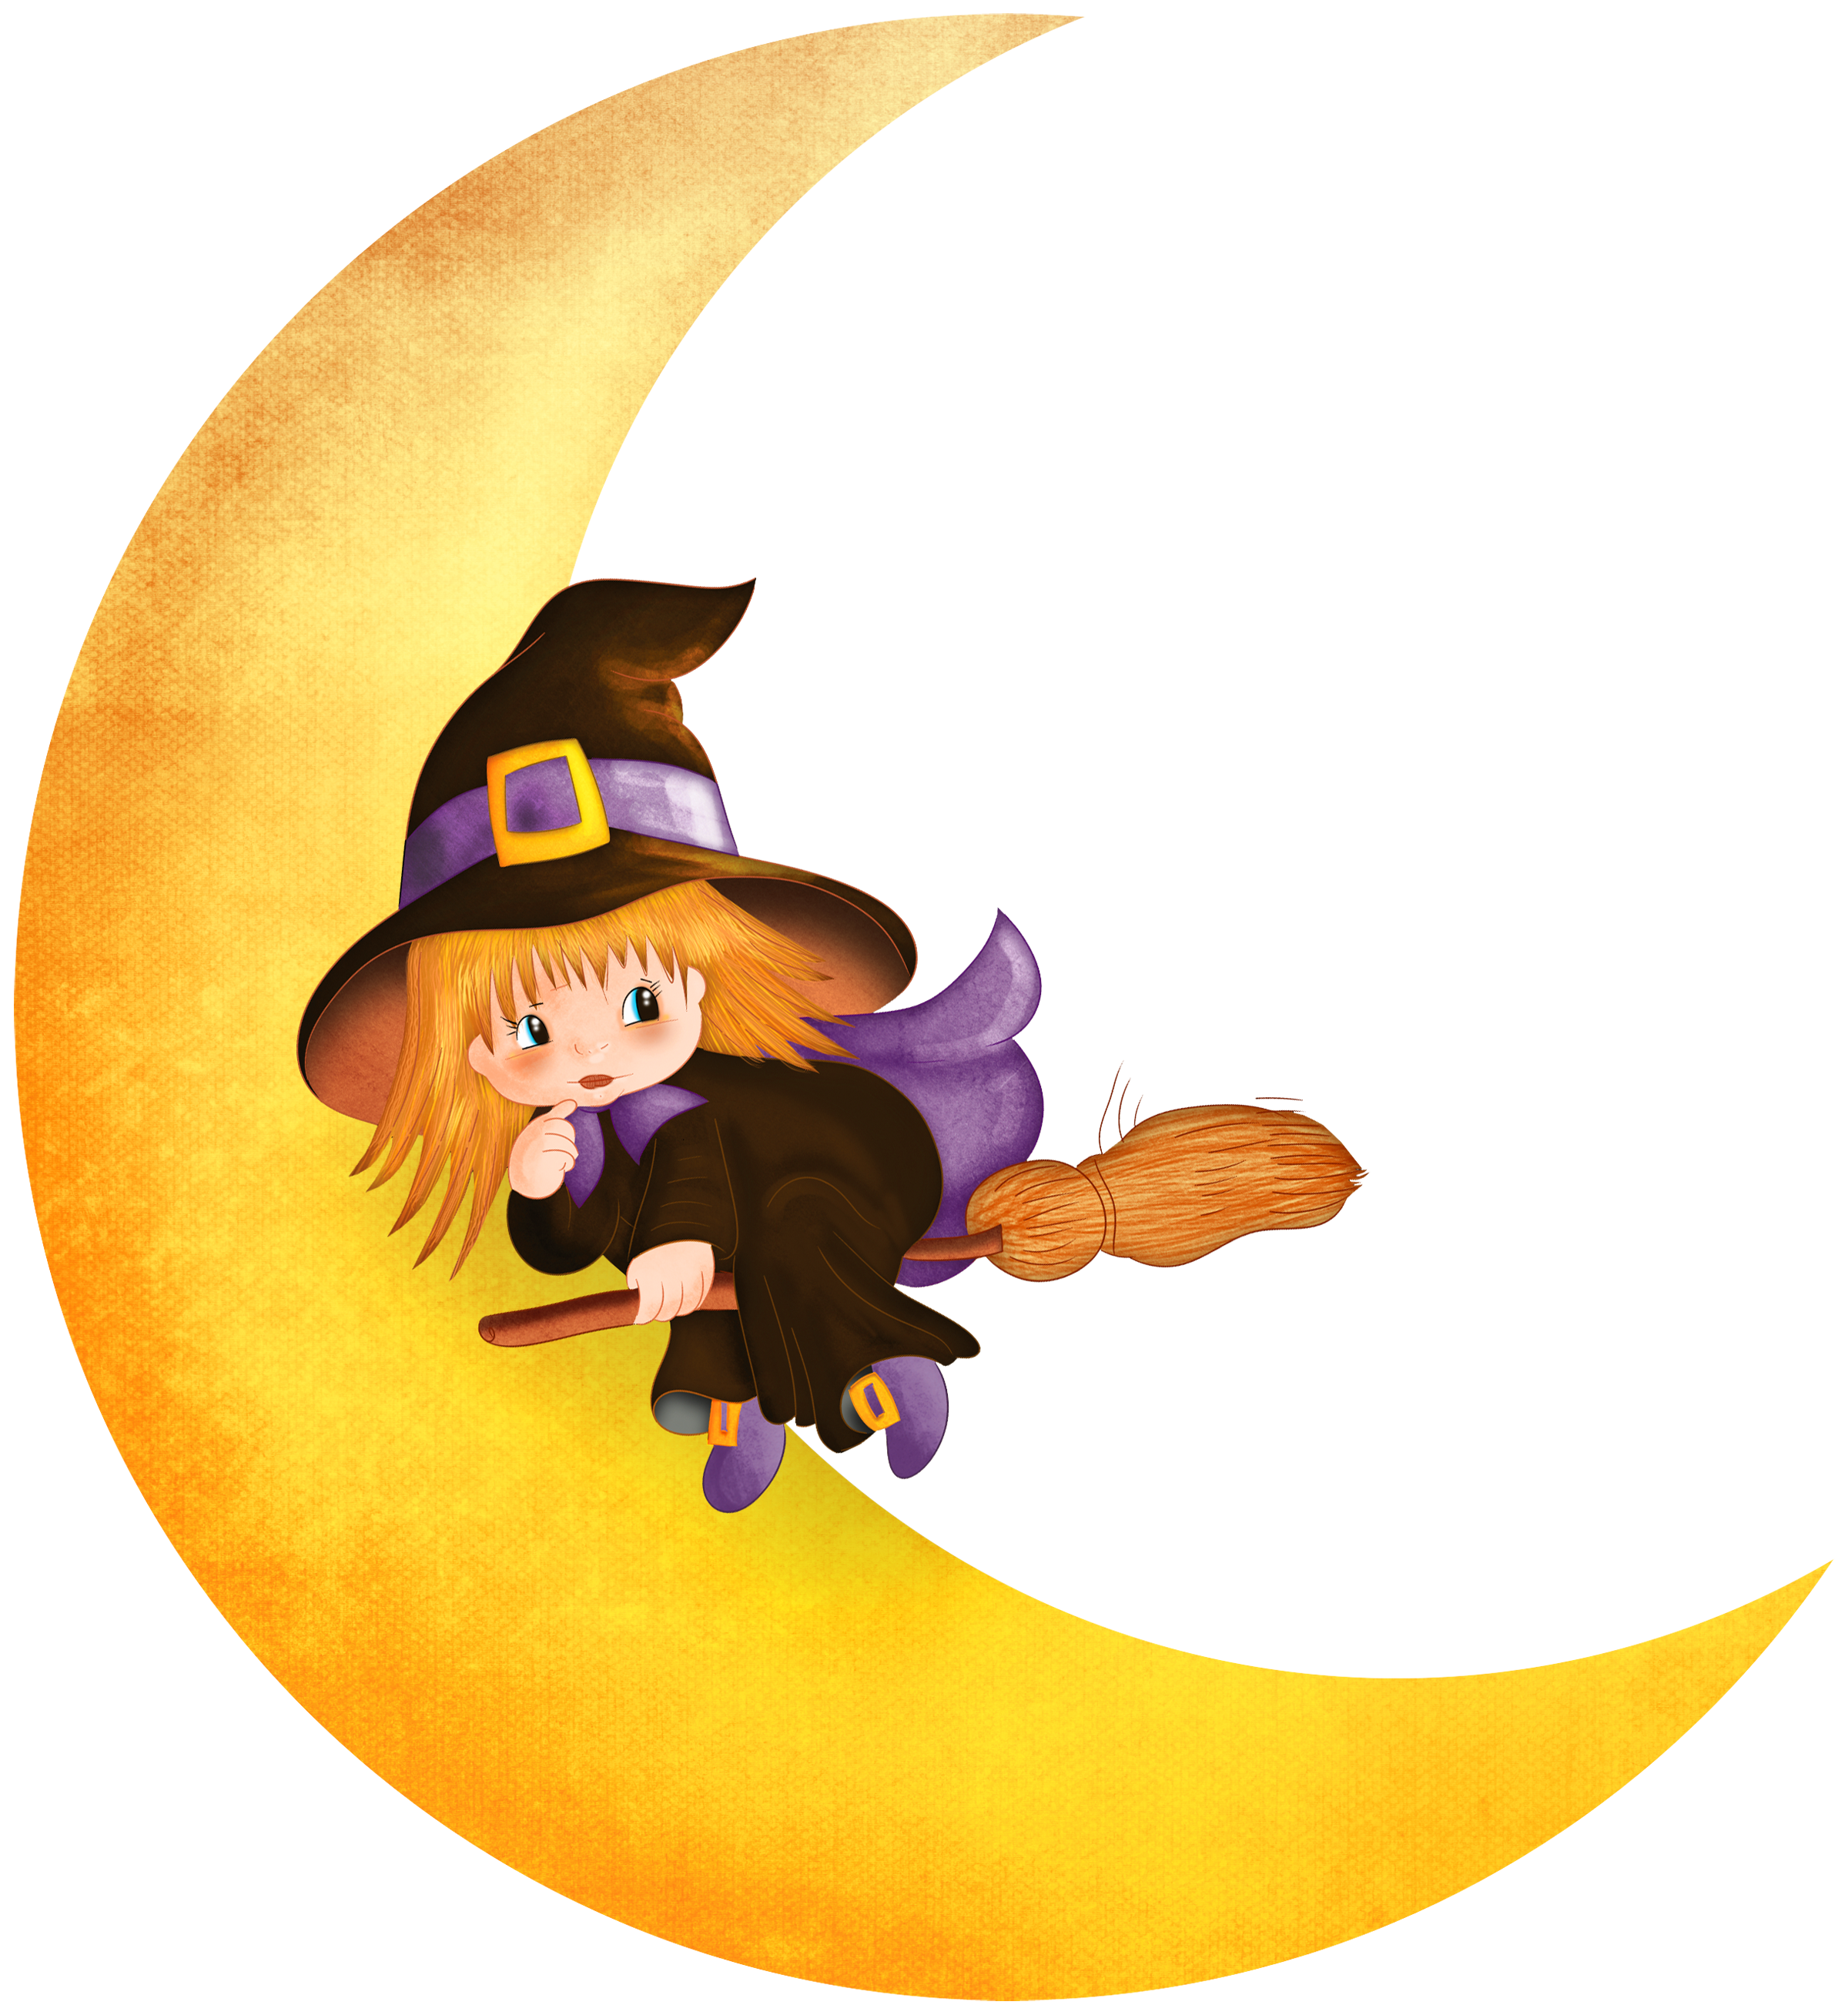 Witch clipart item. Halloween on the moon